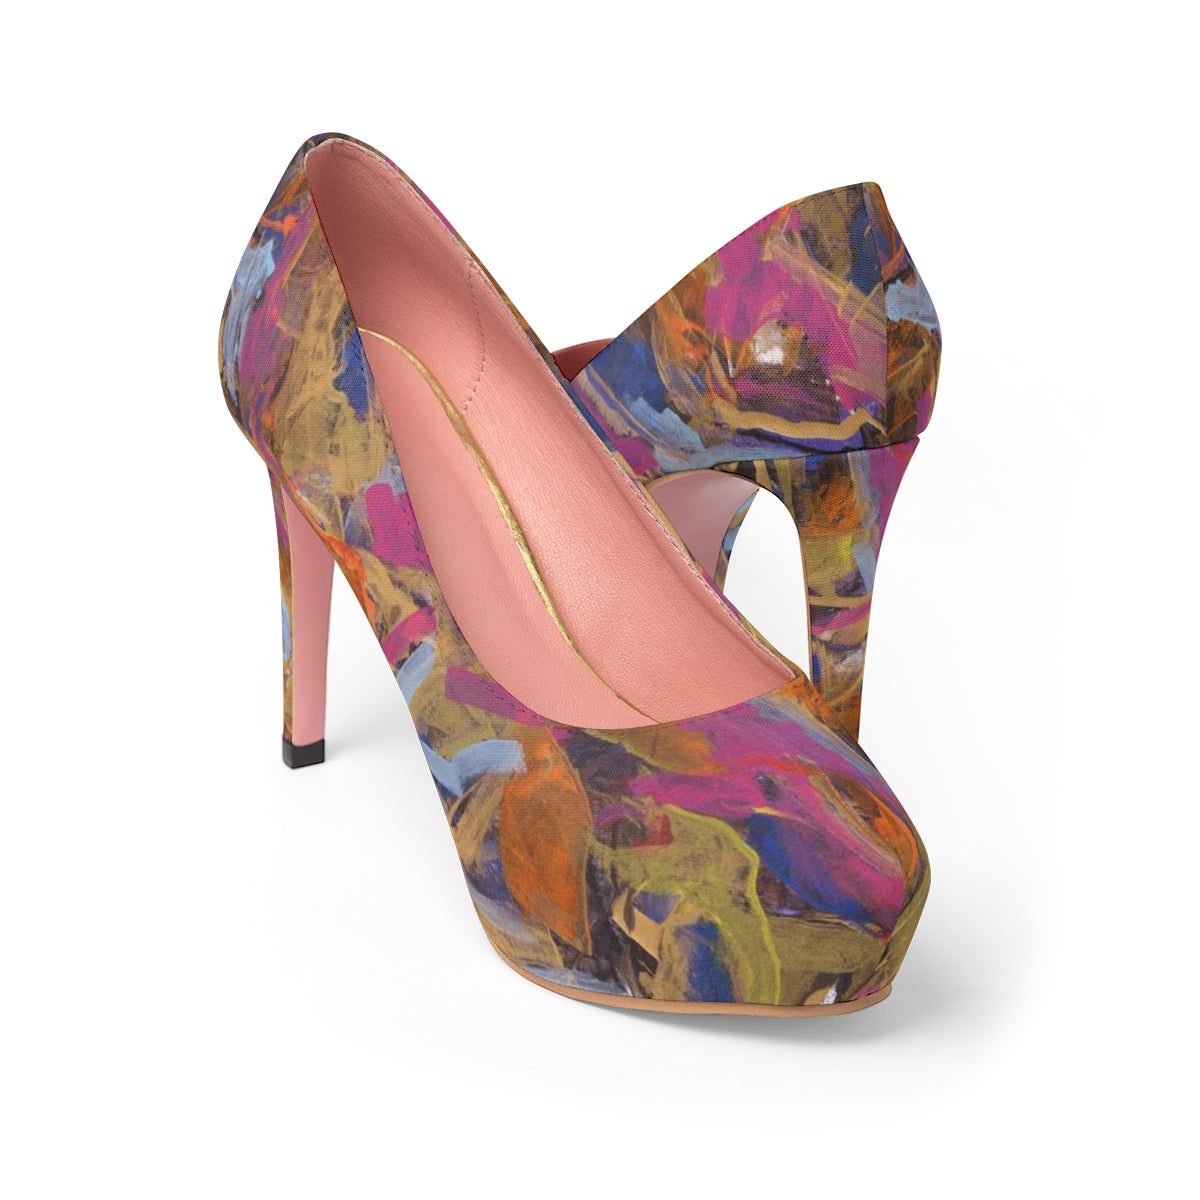 PHOENIX FROM ASHES  Women's Platform Heels  SIZES  5 - 11